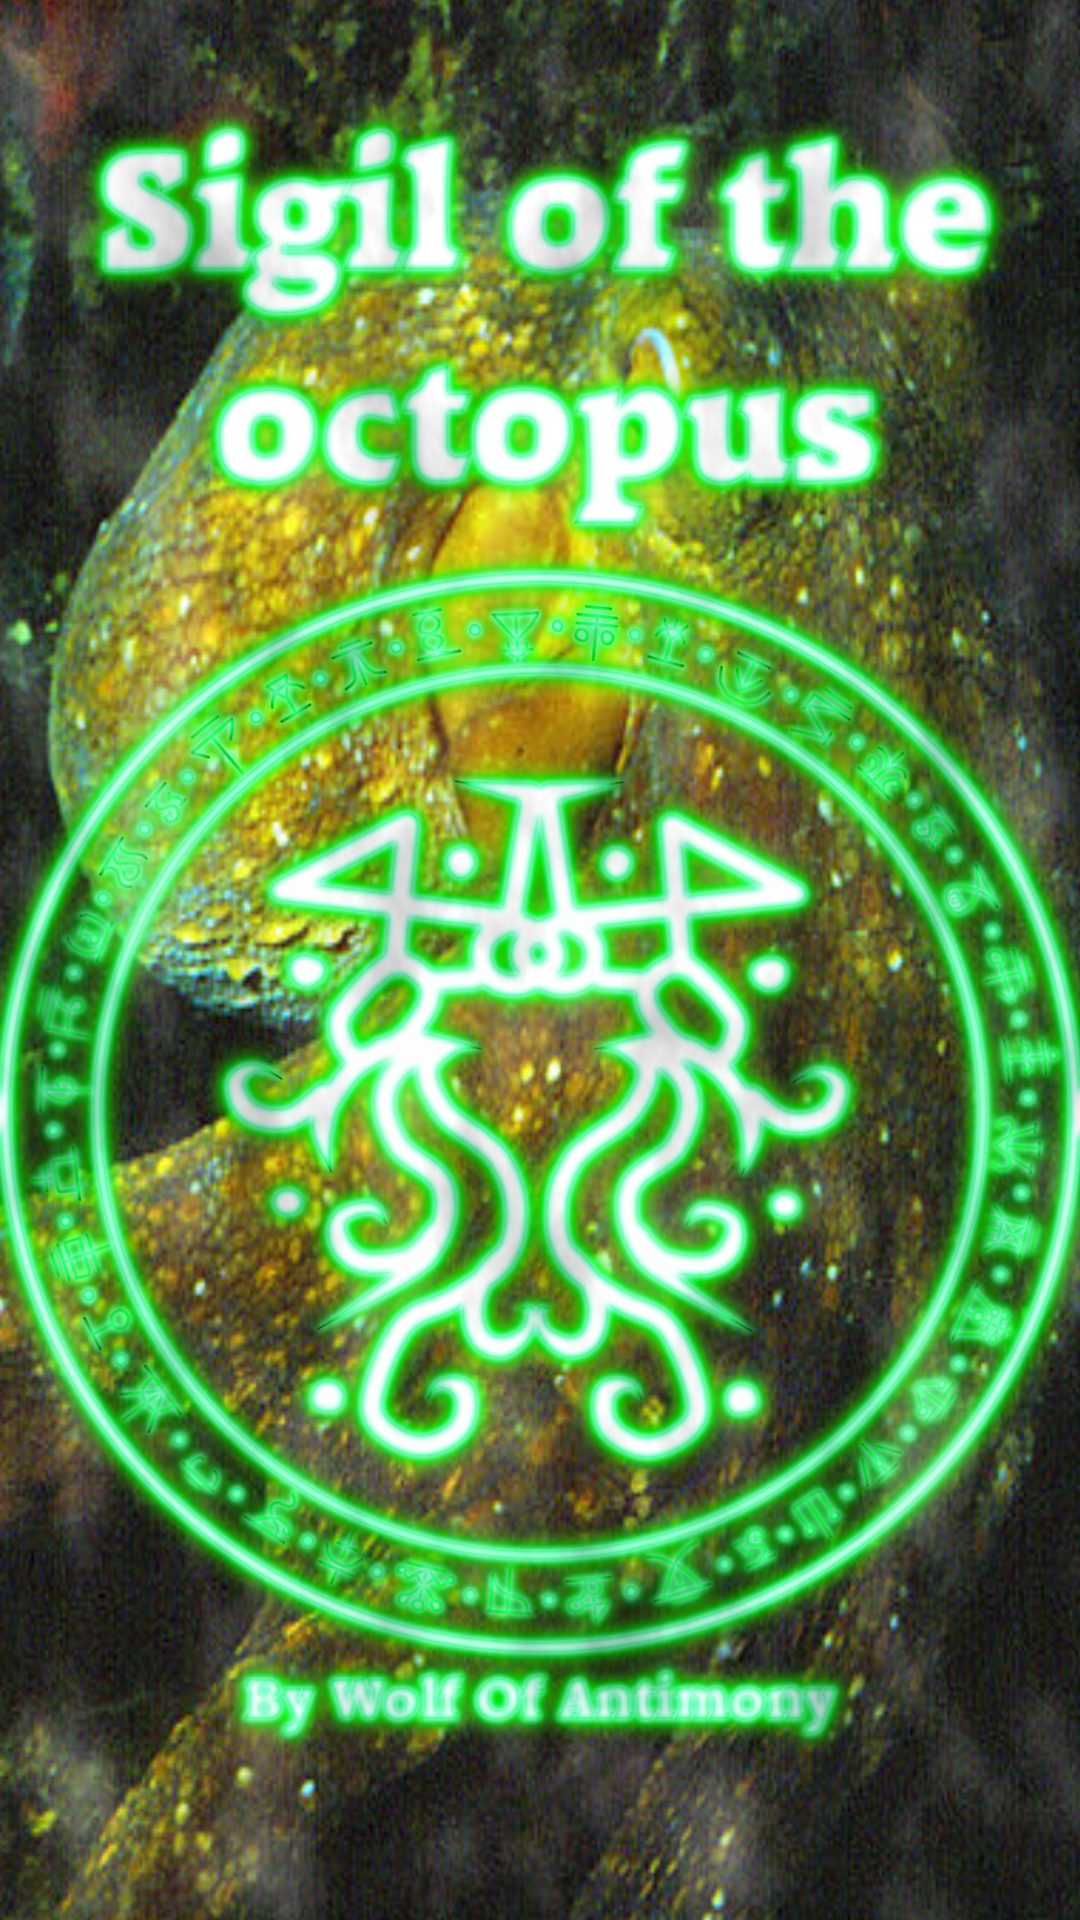 Sigil of the octopus